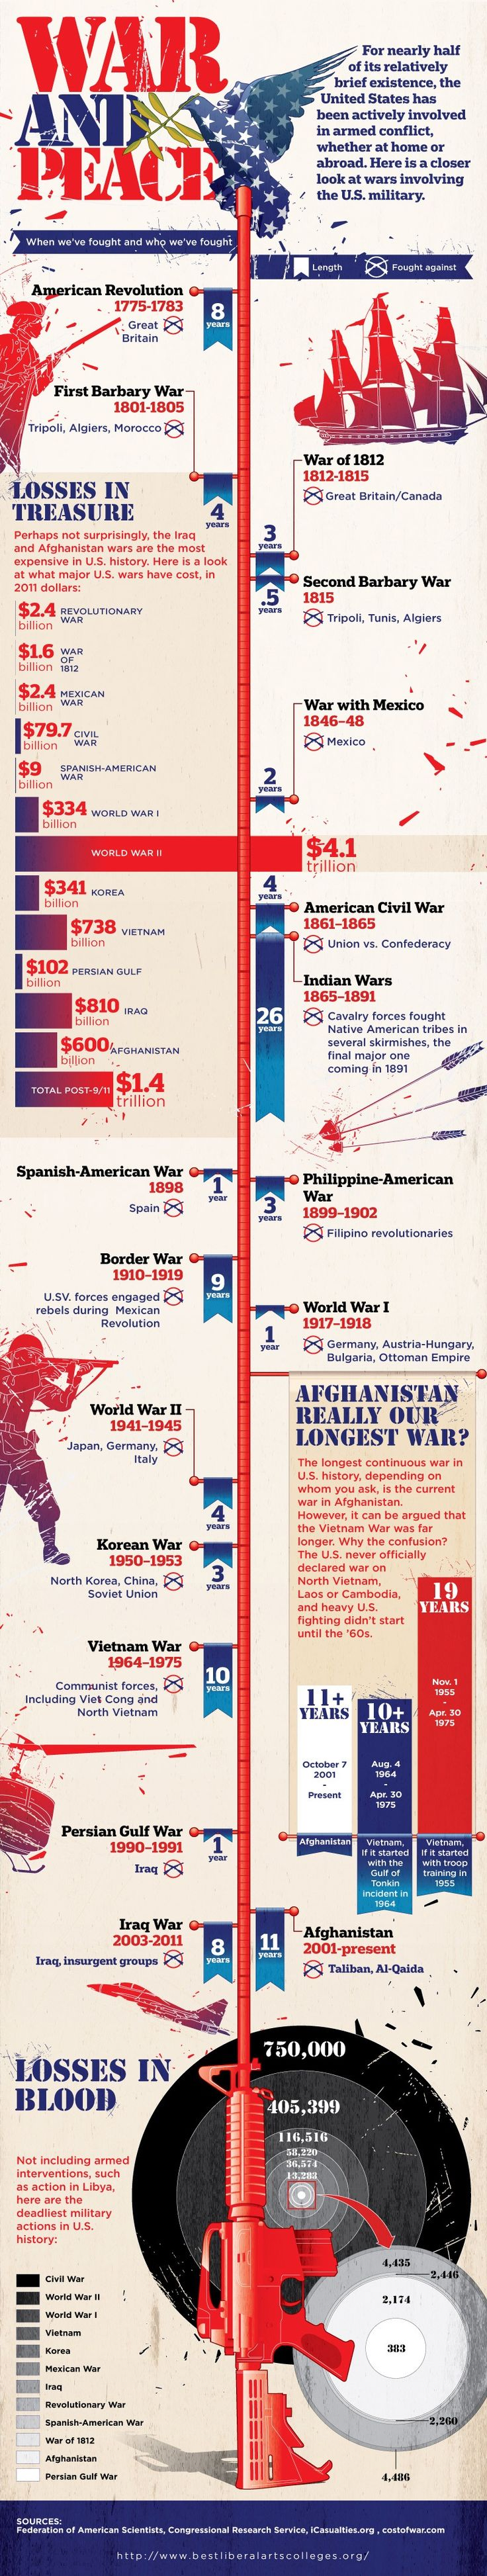 Here is a closer look at wars involving the U.S. military.